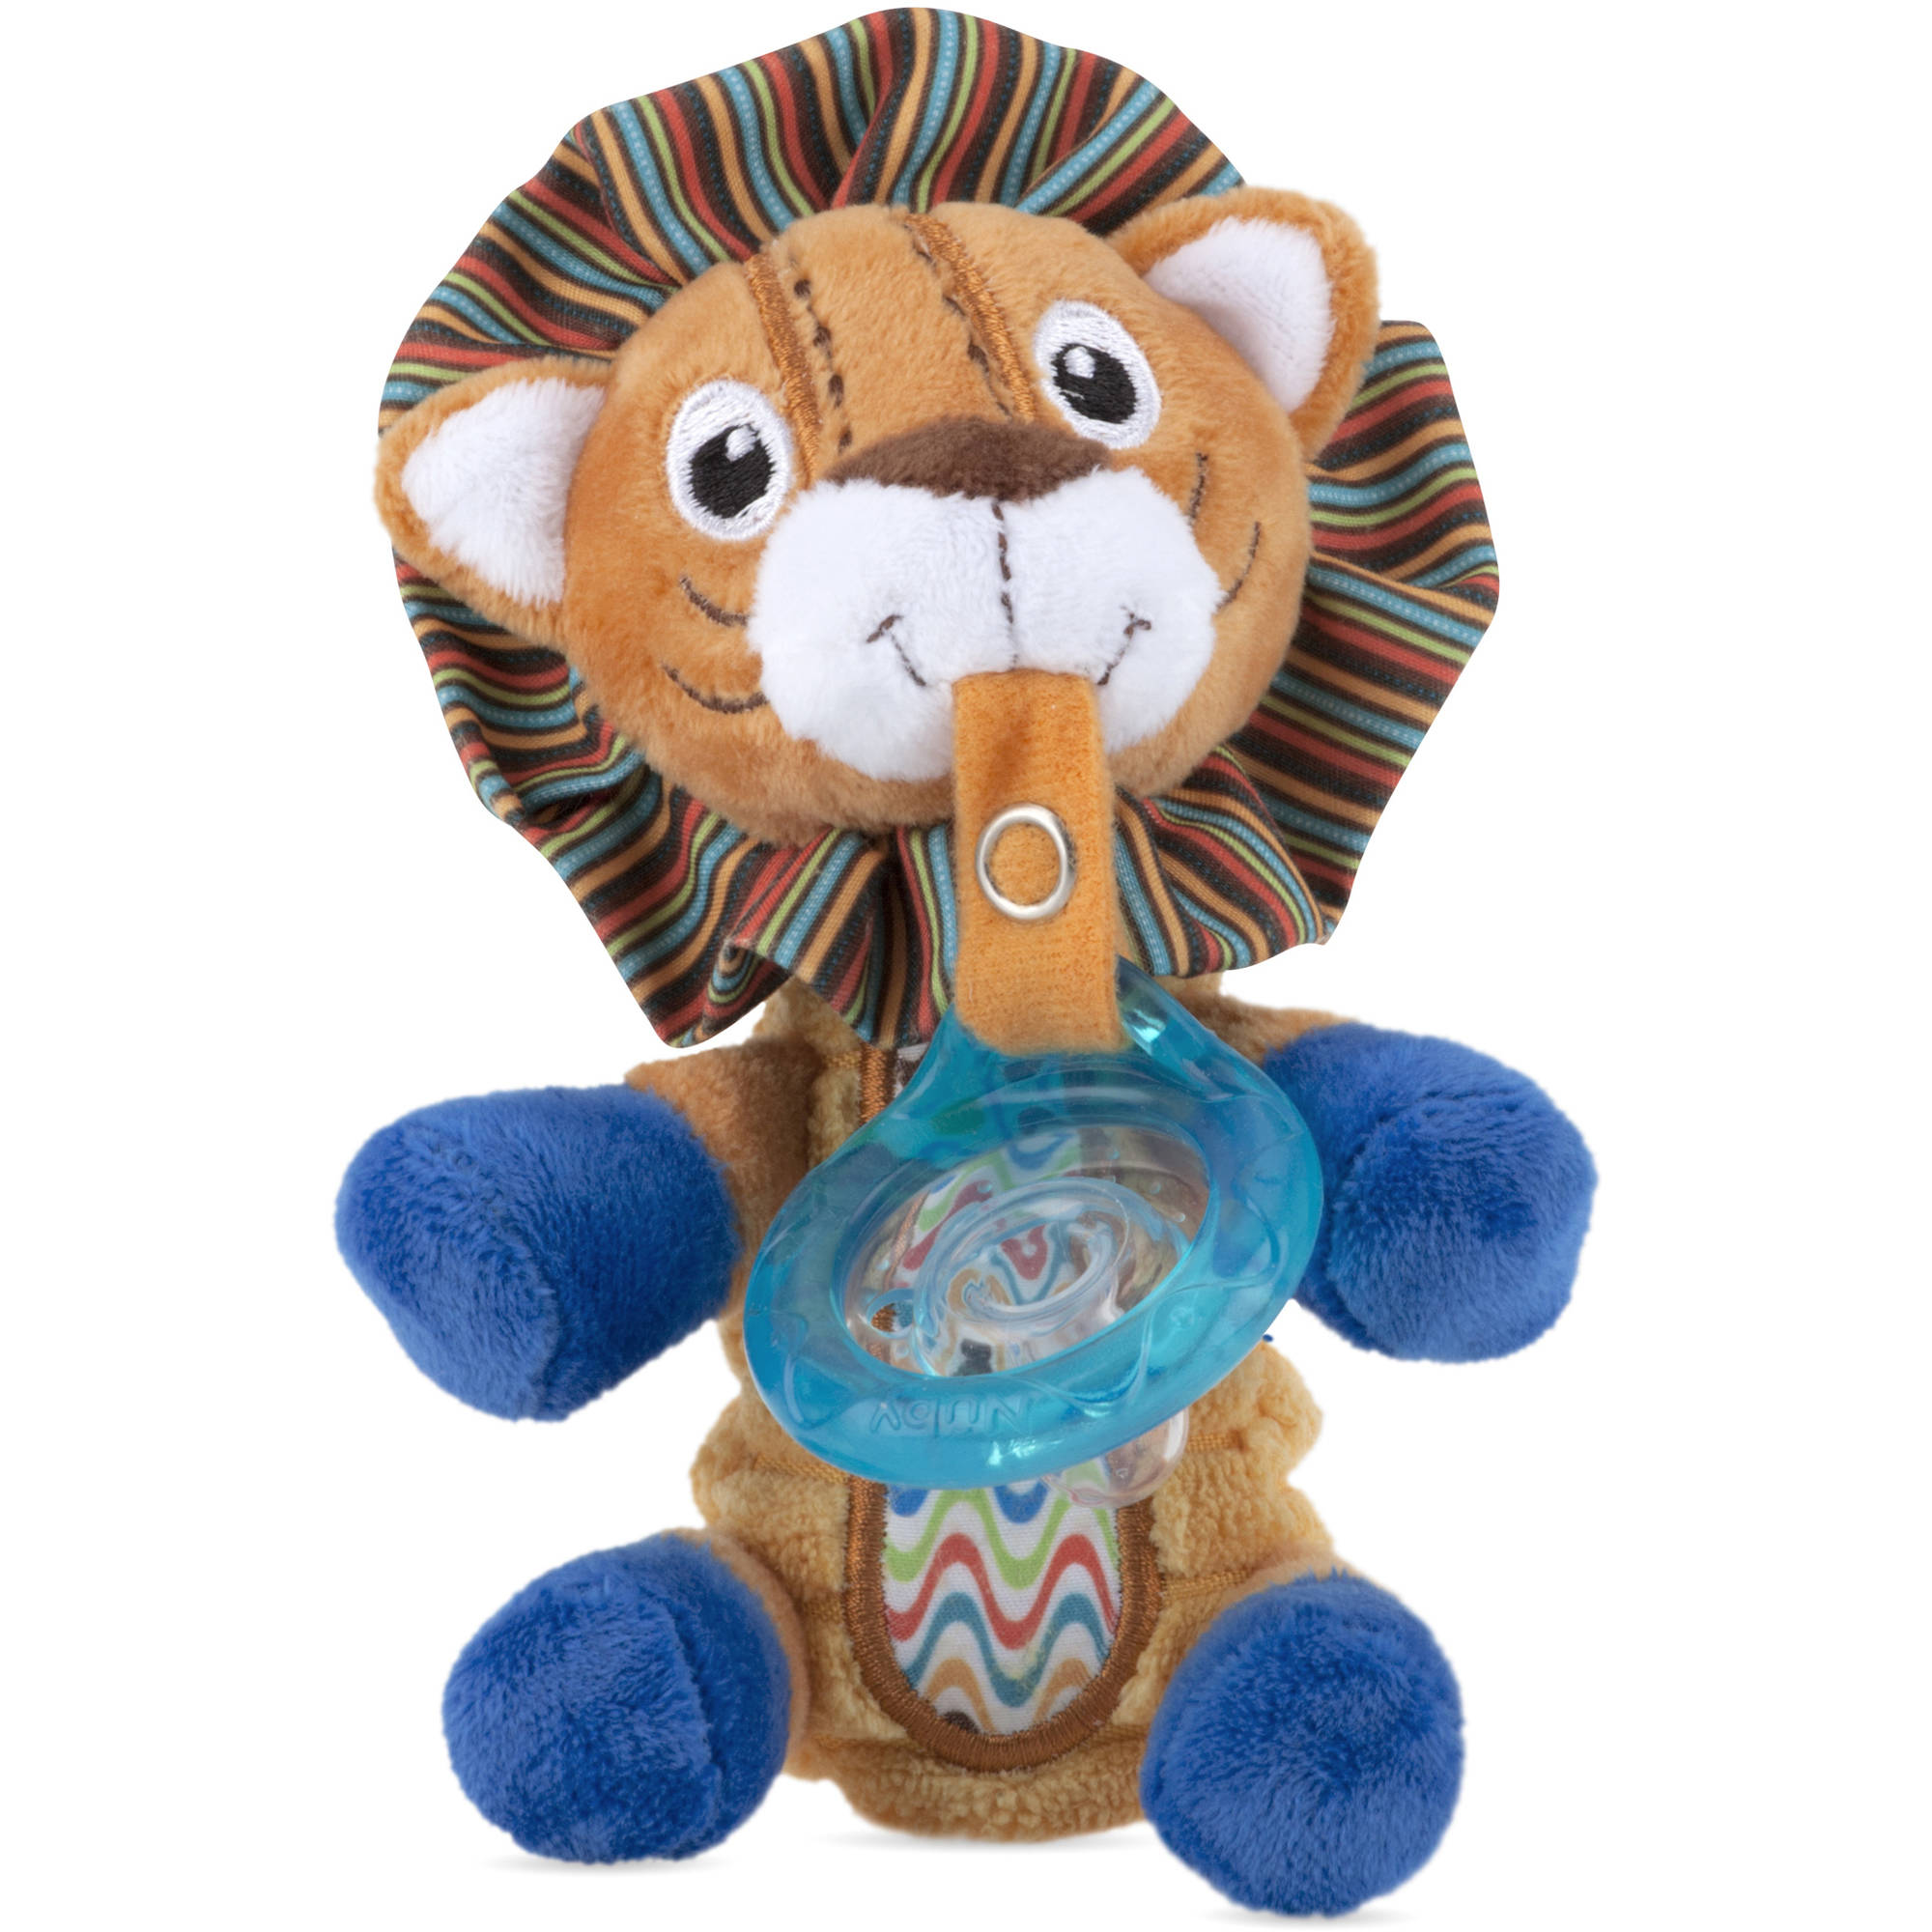 Snoozie Plush Pacifinder with Small Natural Flex Cherry Pacifier for 0-6+ Months, Lion